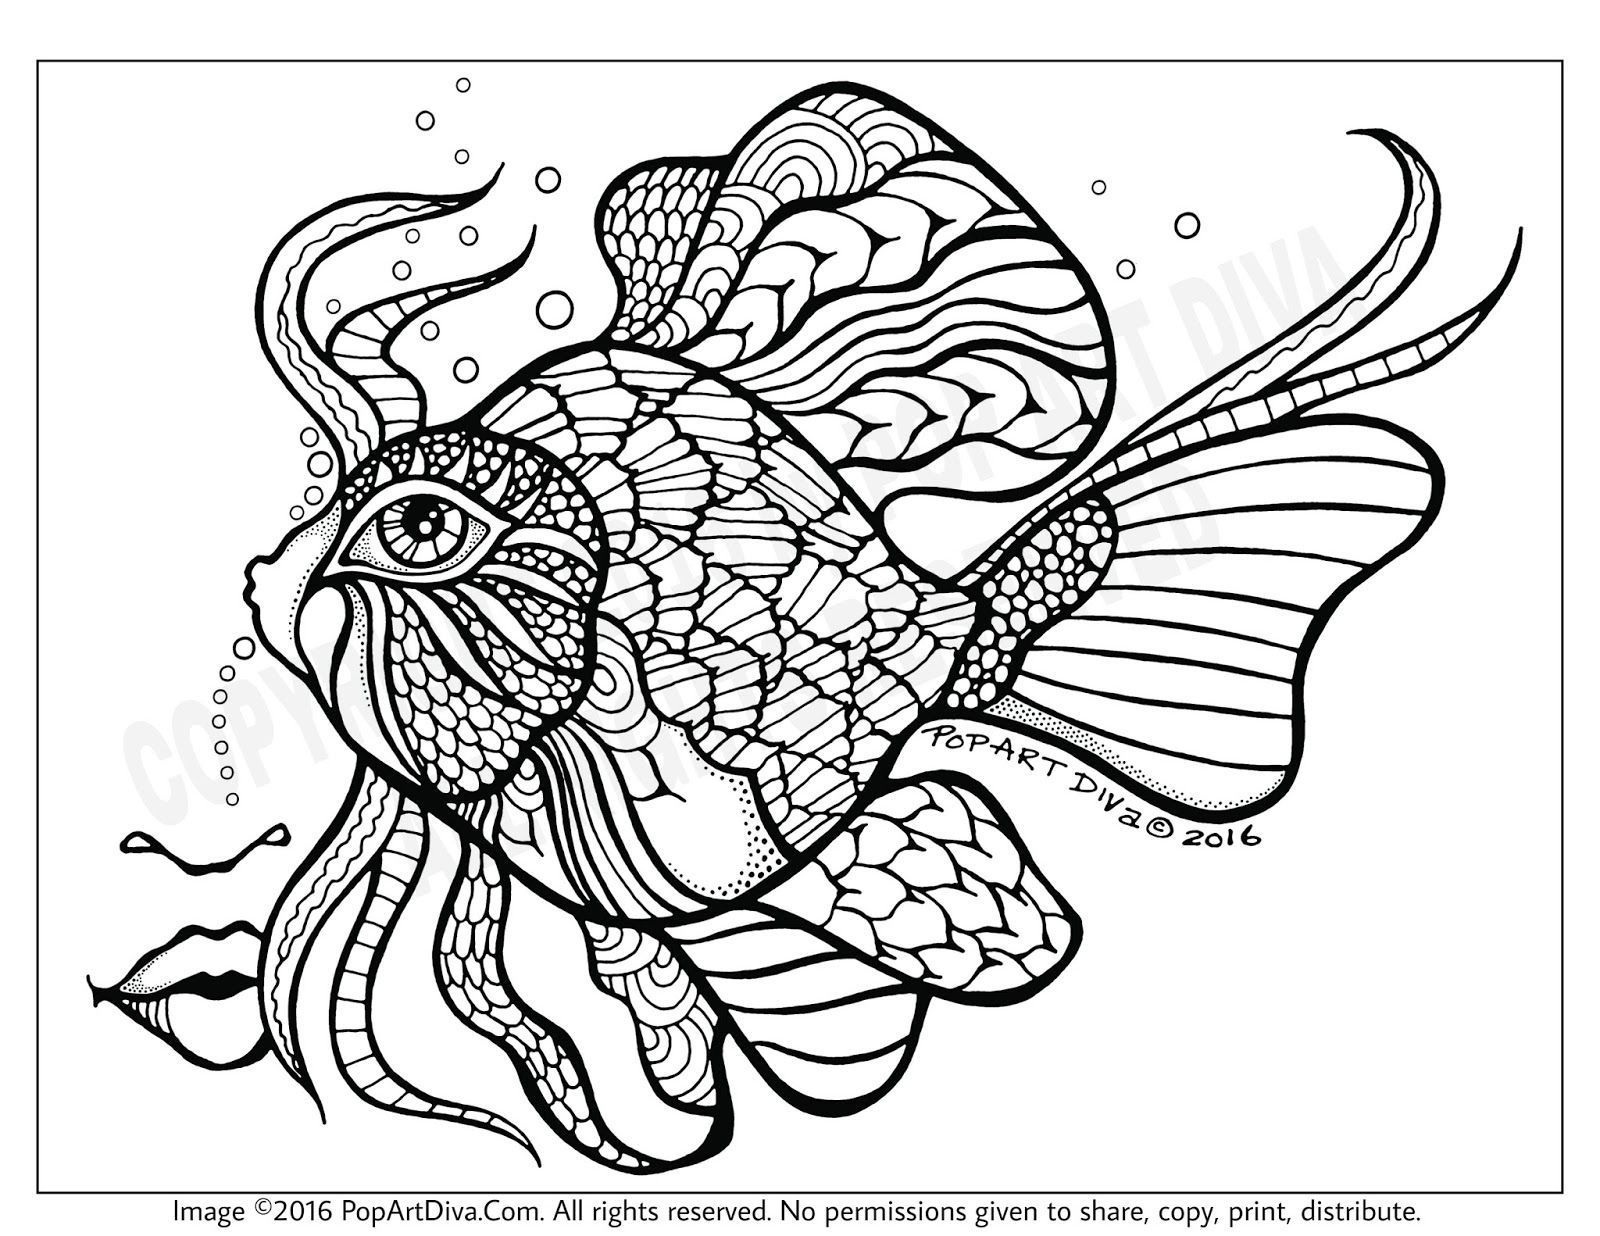 - Coloring Book Zentangle Style Fantasy Fish Drawing (With Images